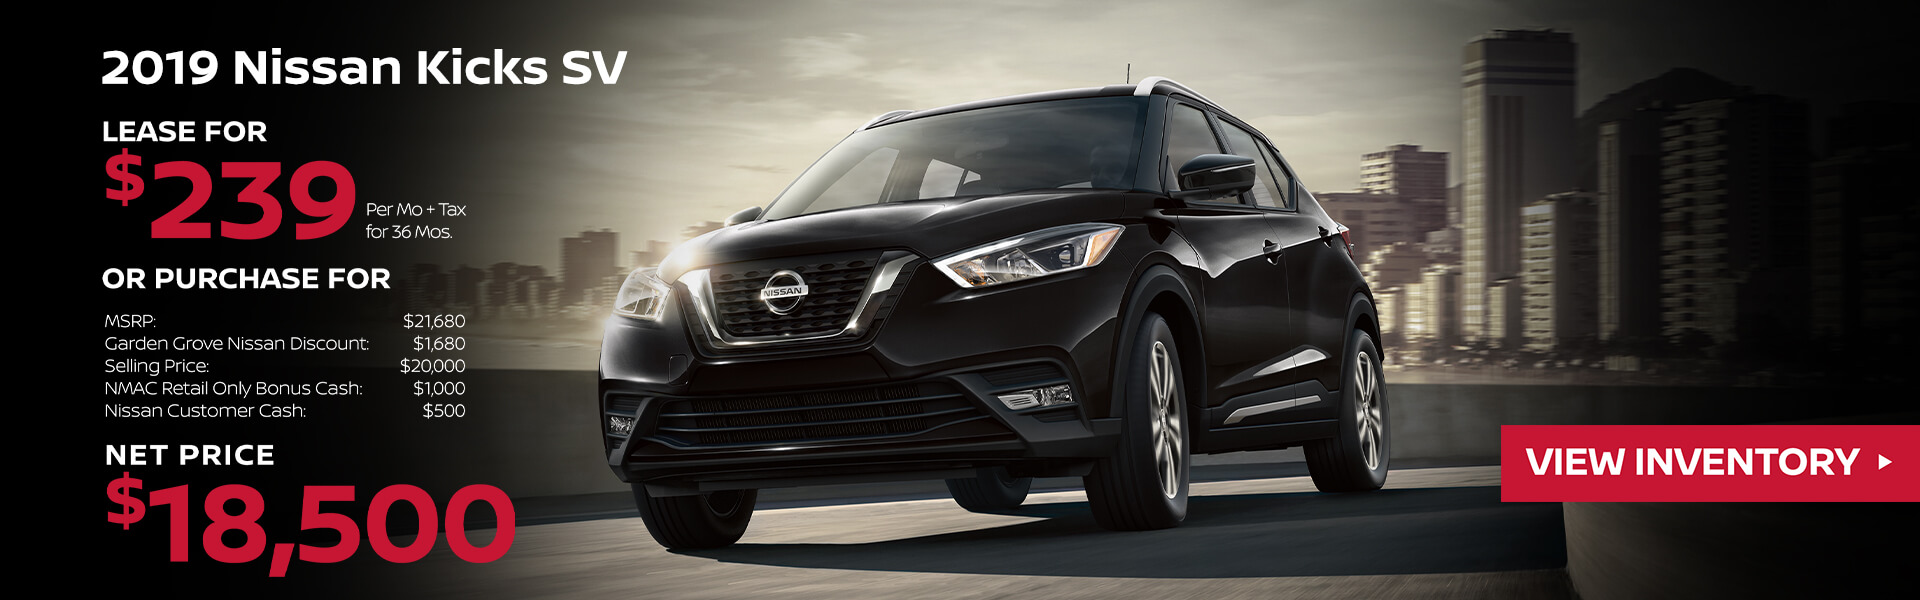 2019 Nissan Kicks Lease for $239